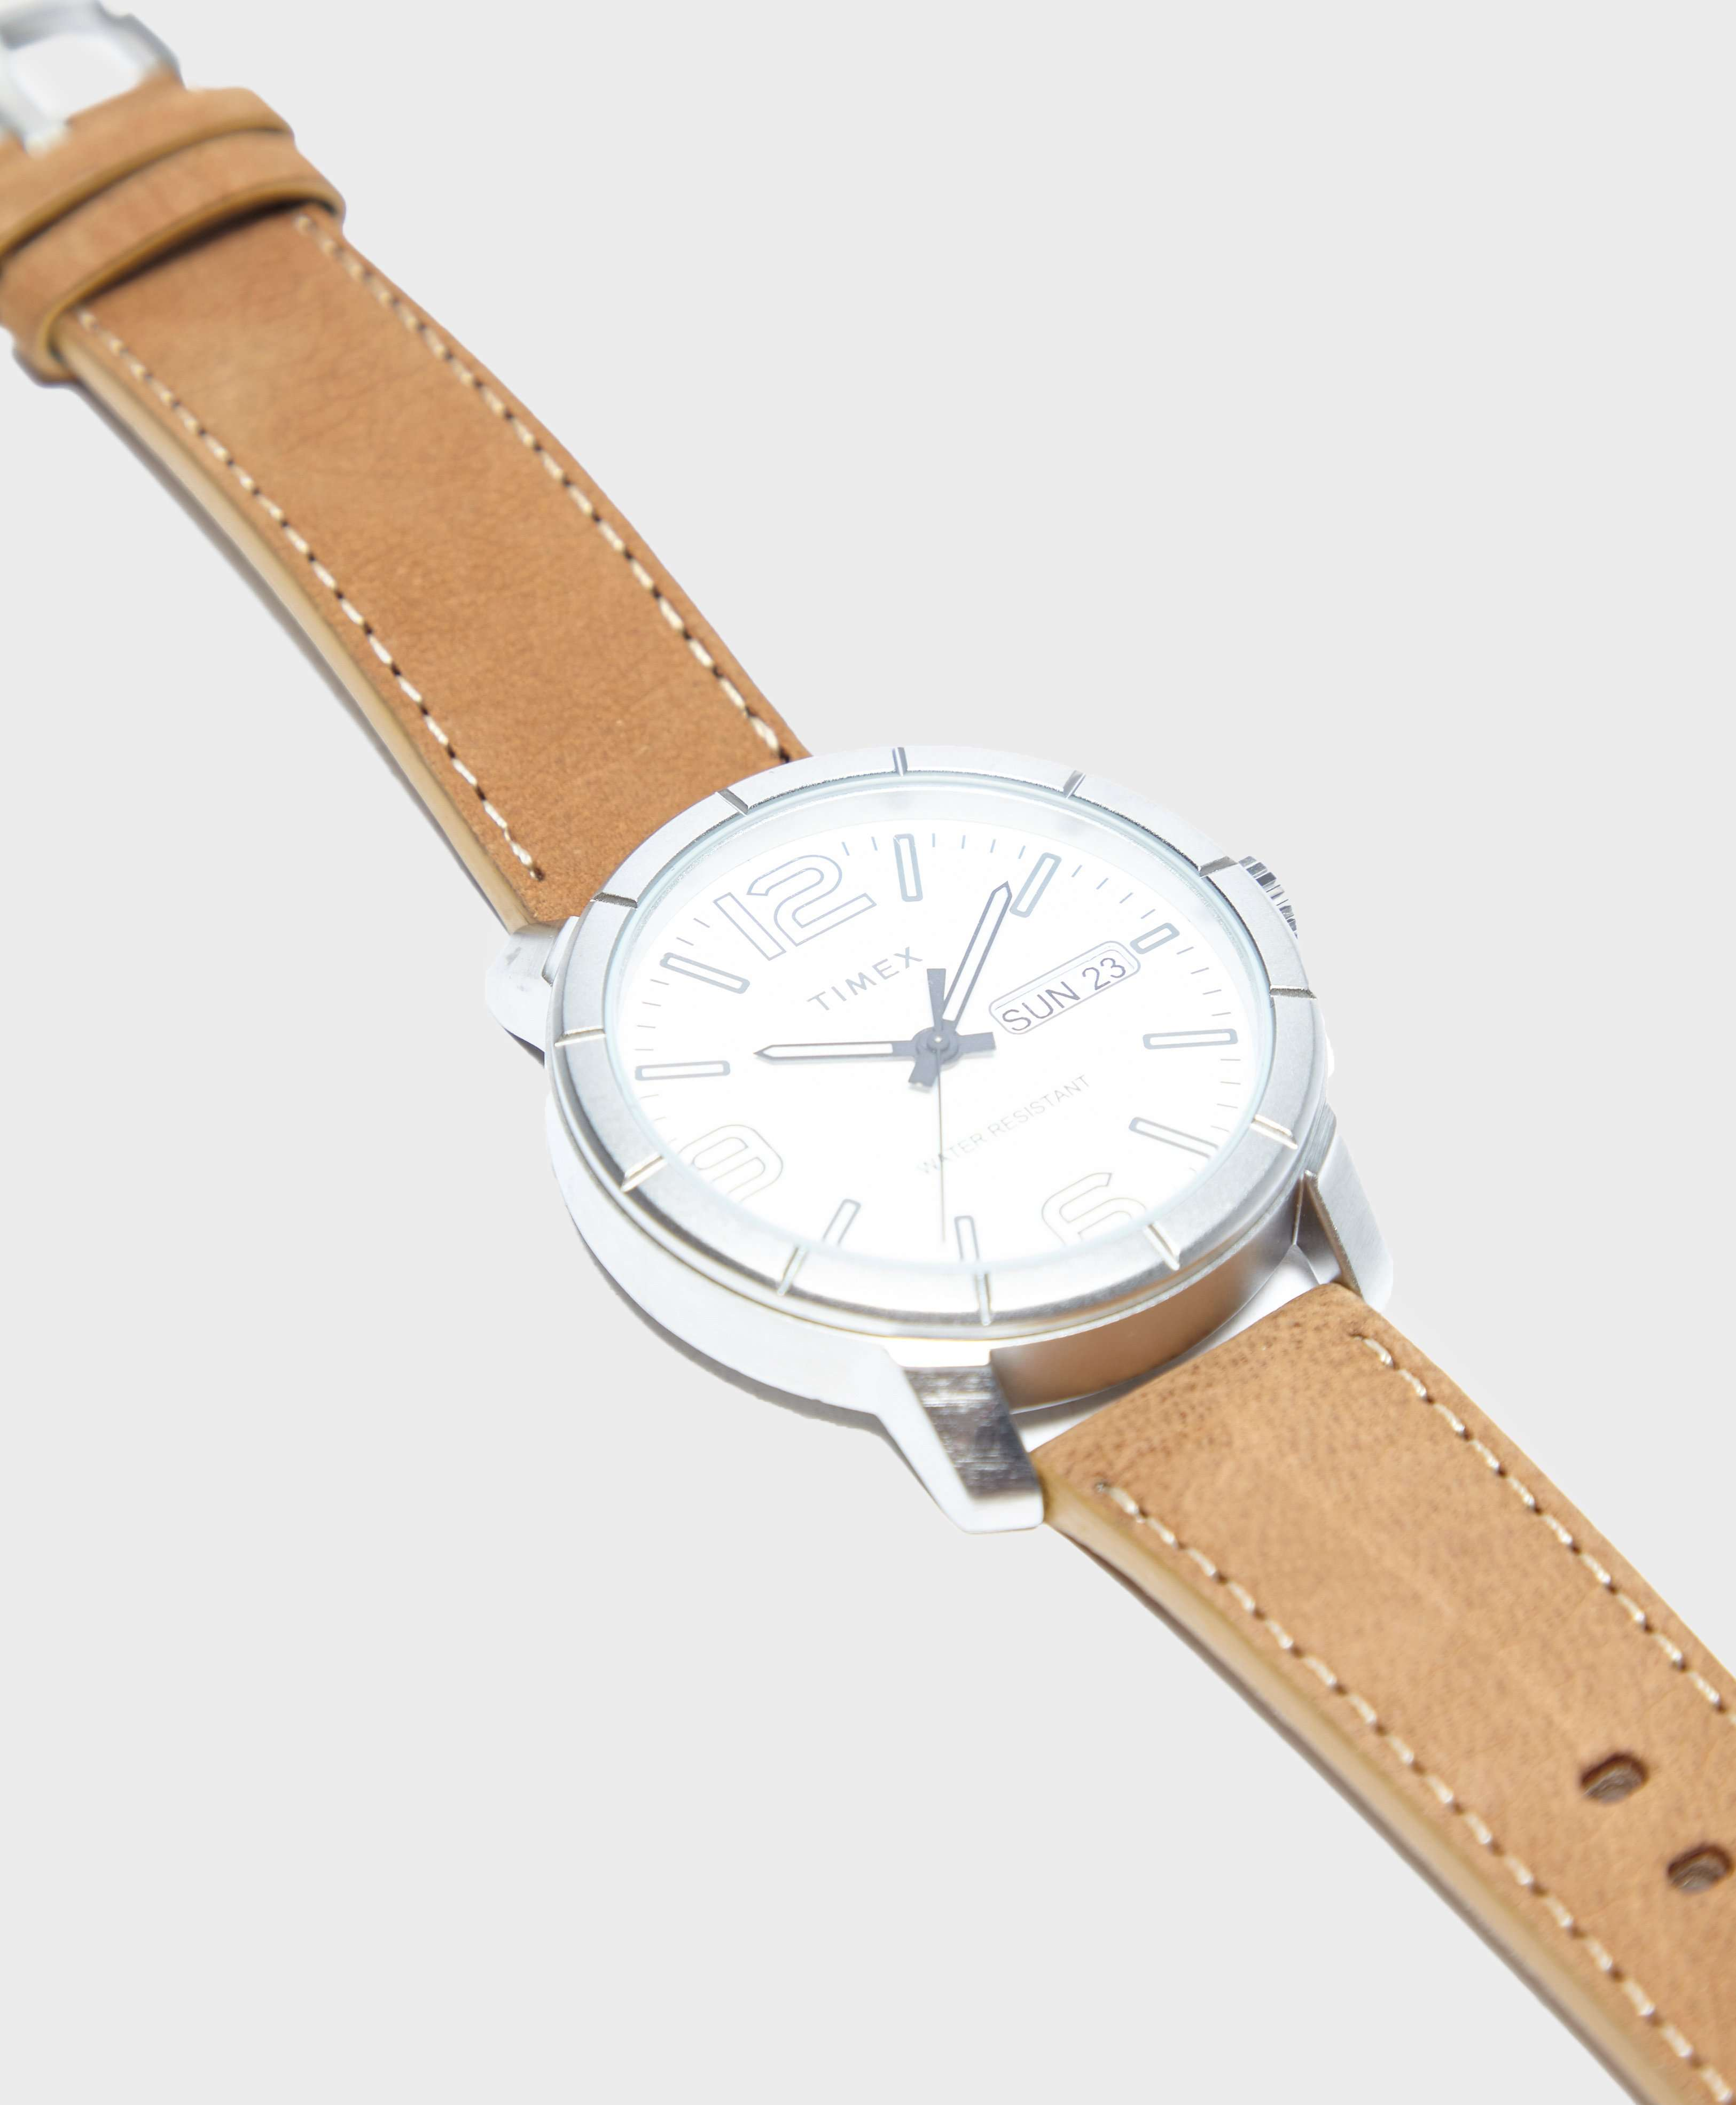 Timex Mod44 44mm Leather Strap Watch